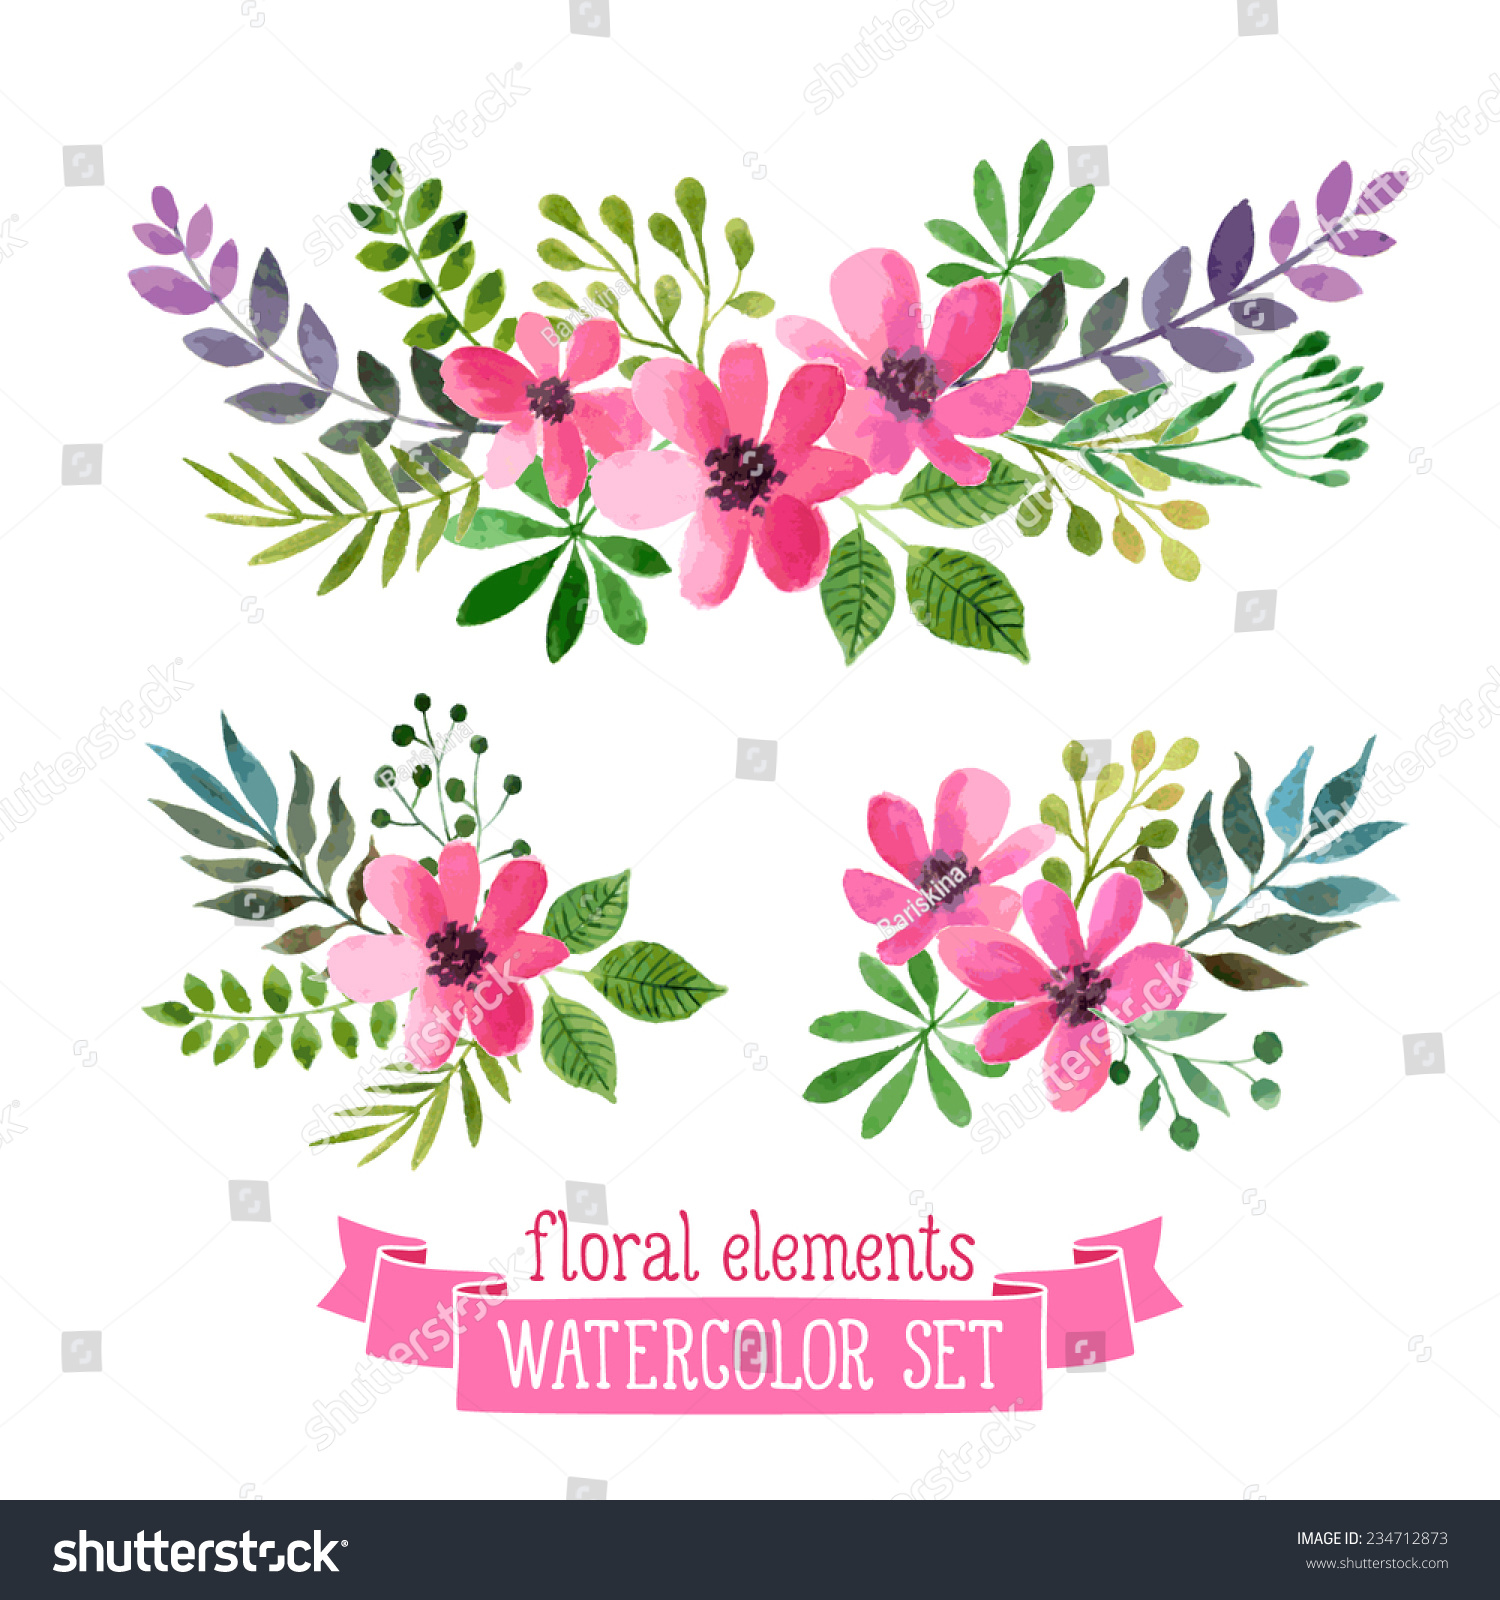 Flowers Vector Design Wedding Invitations Wedding: Vector Flowers Set. Colorful Floral Collection With Leaves